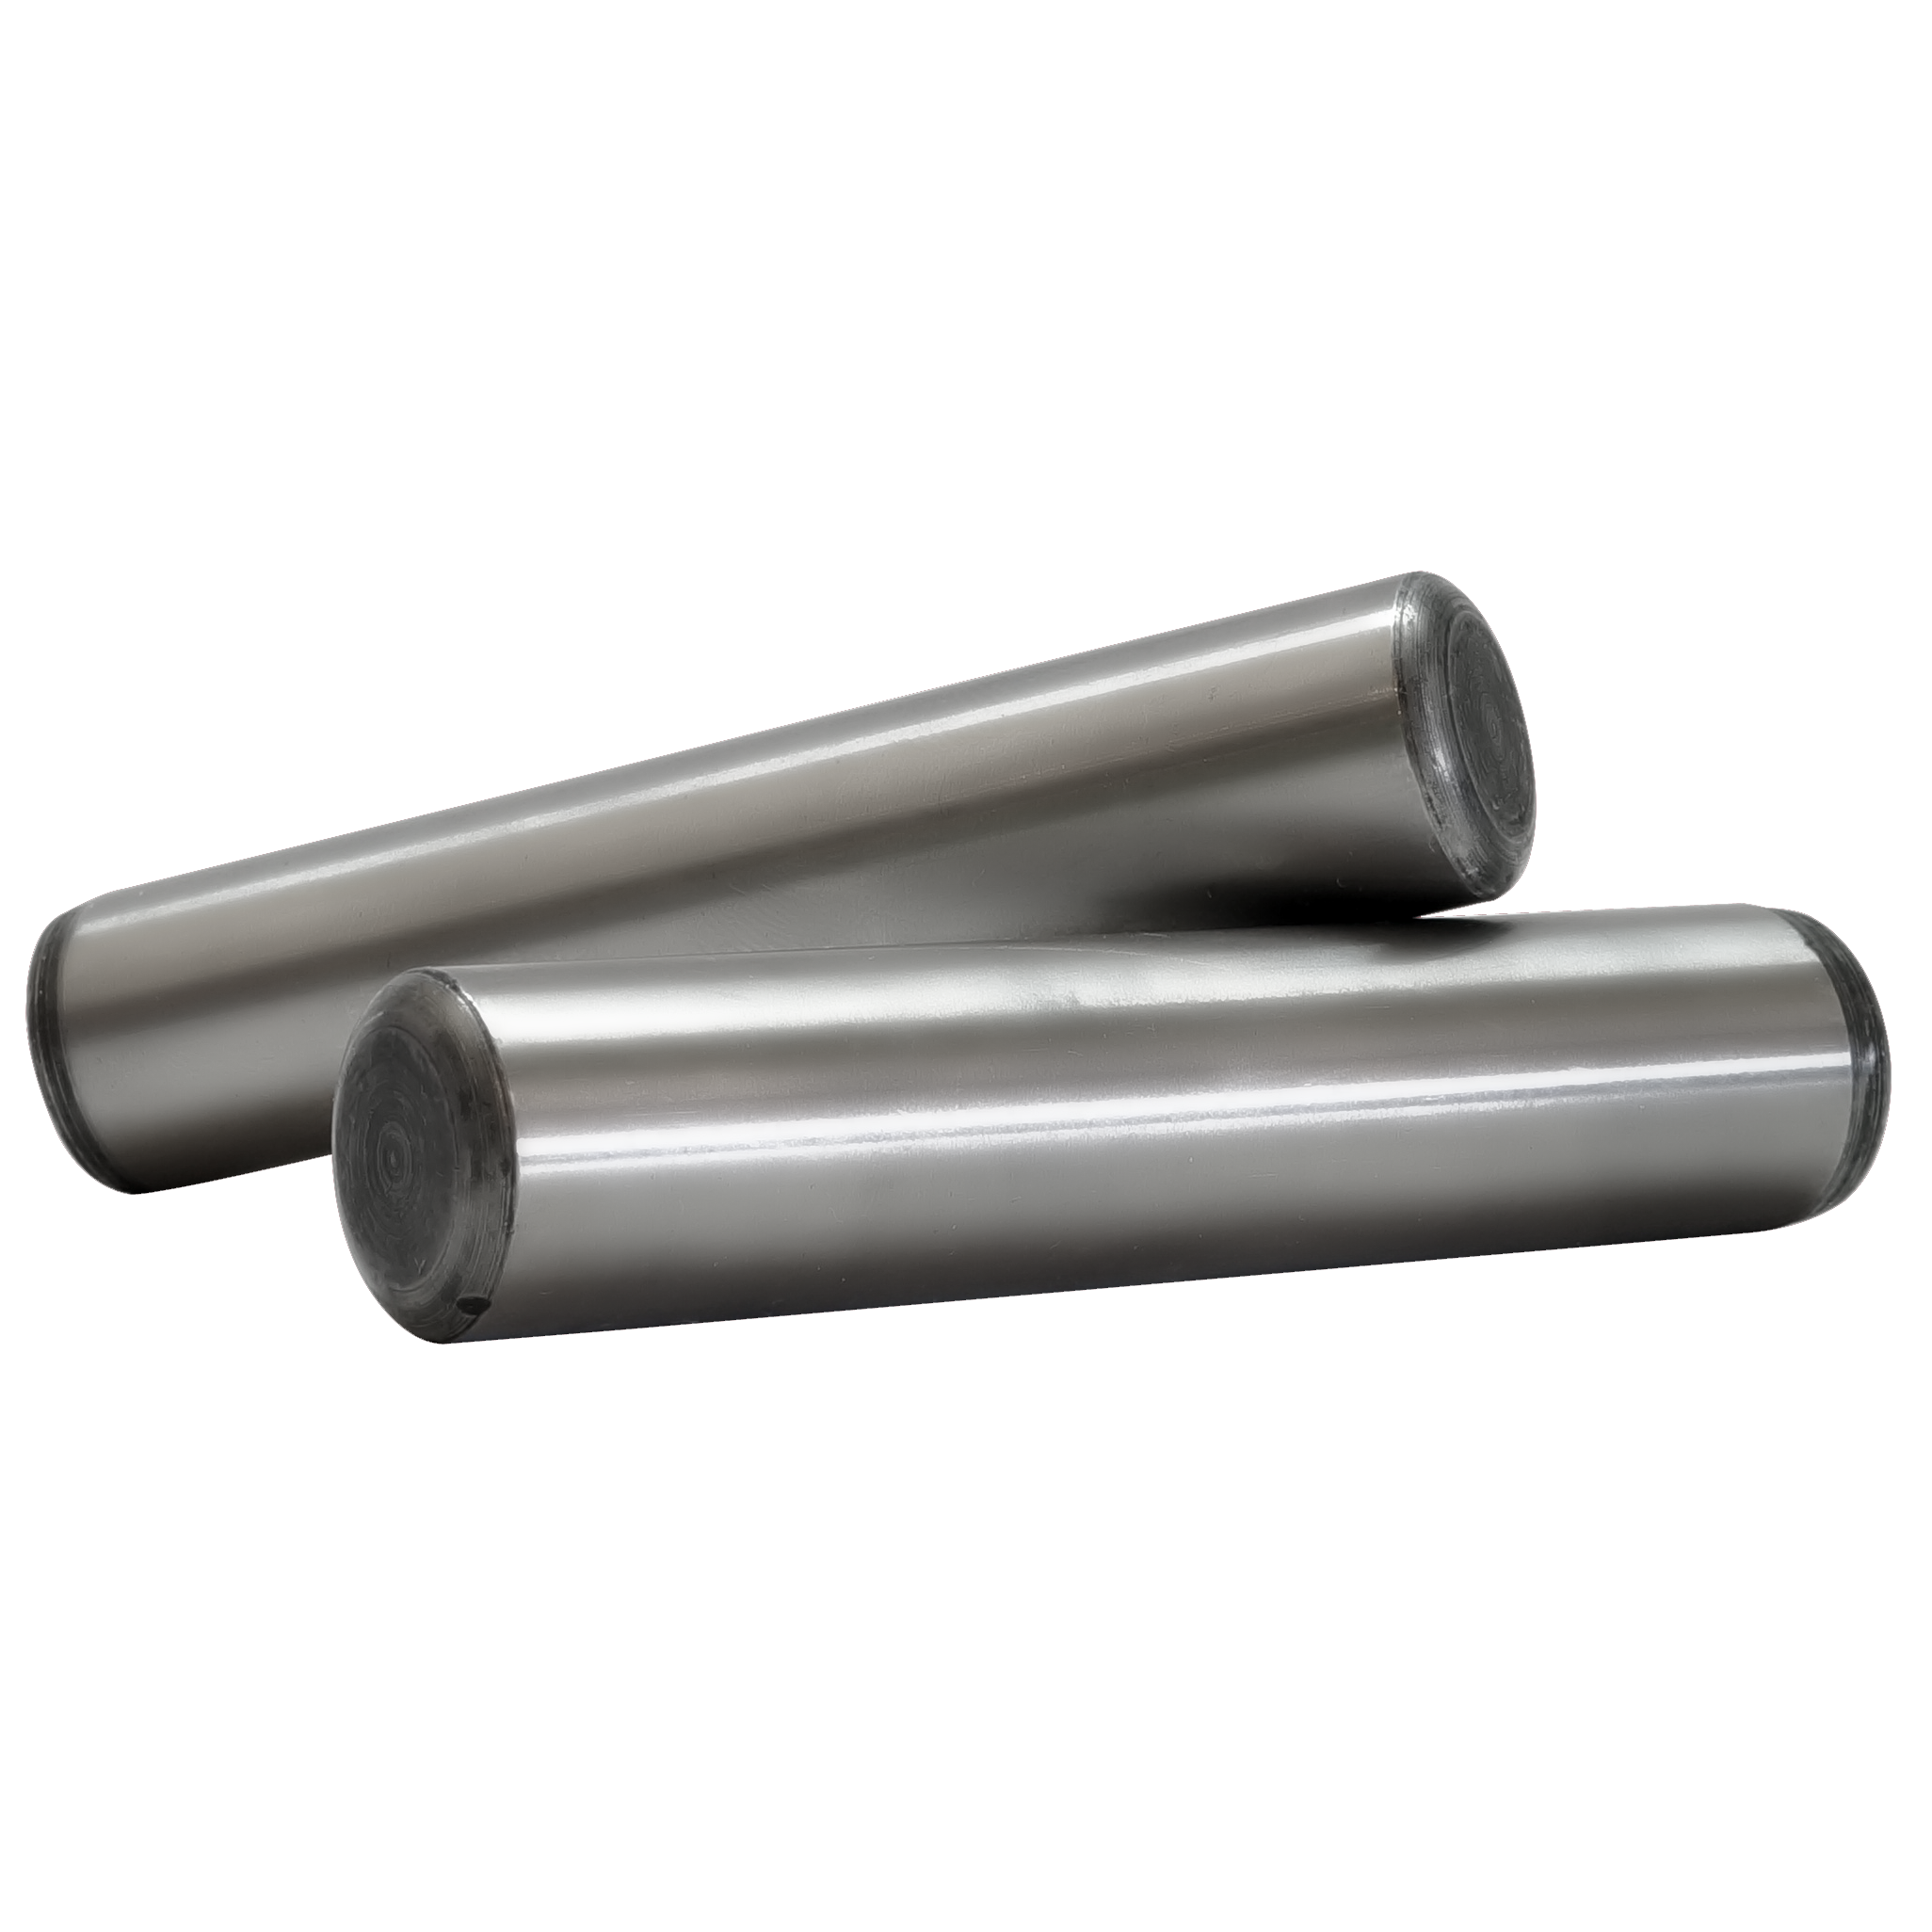 "7/16x1 1/2 ASME B18.8.2 Alloy Steel Dowel Pin Hardened Ground 0.0002"" Over Sized  (Unbrako)"